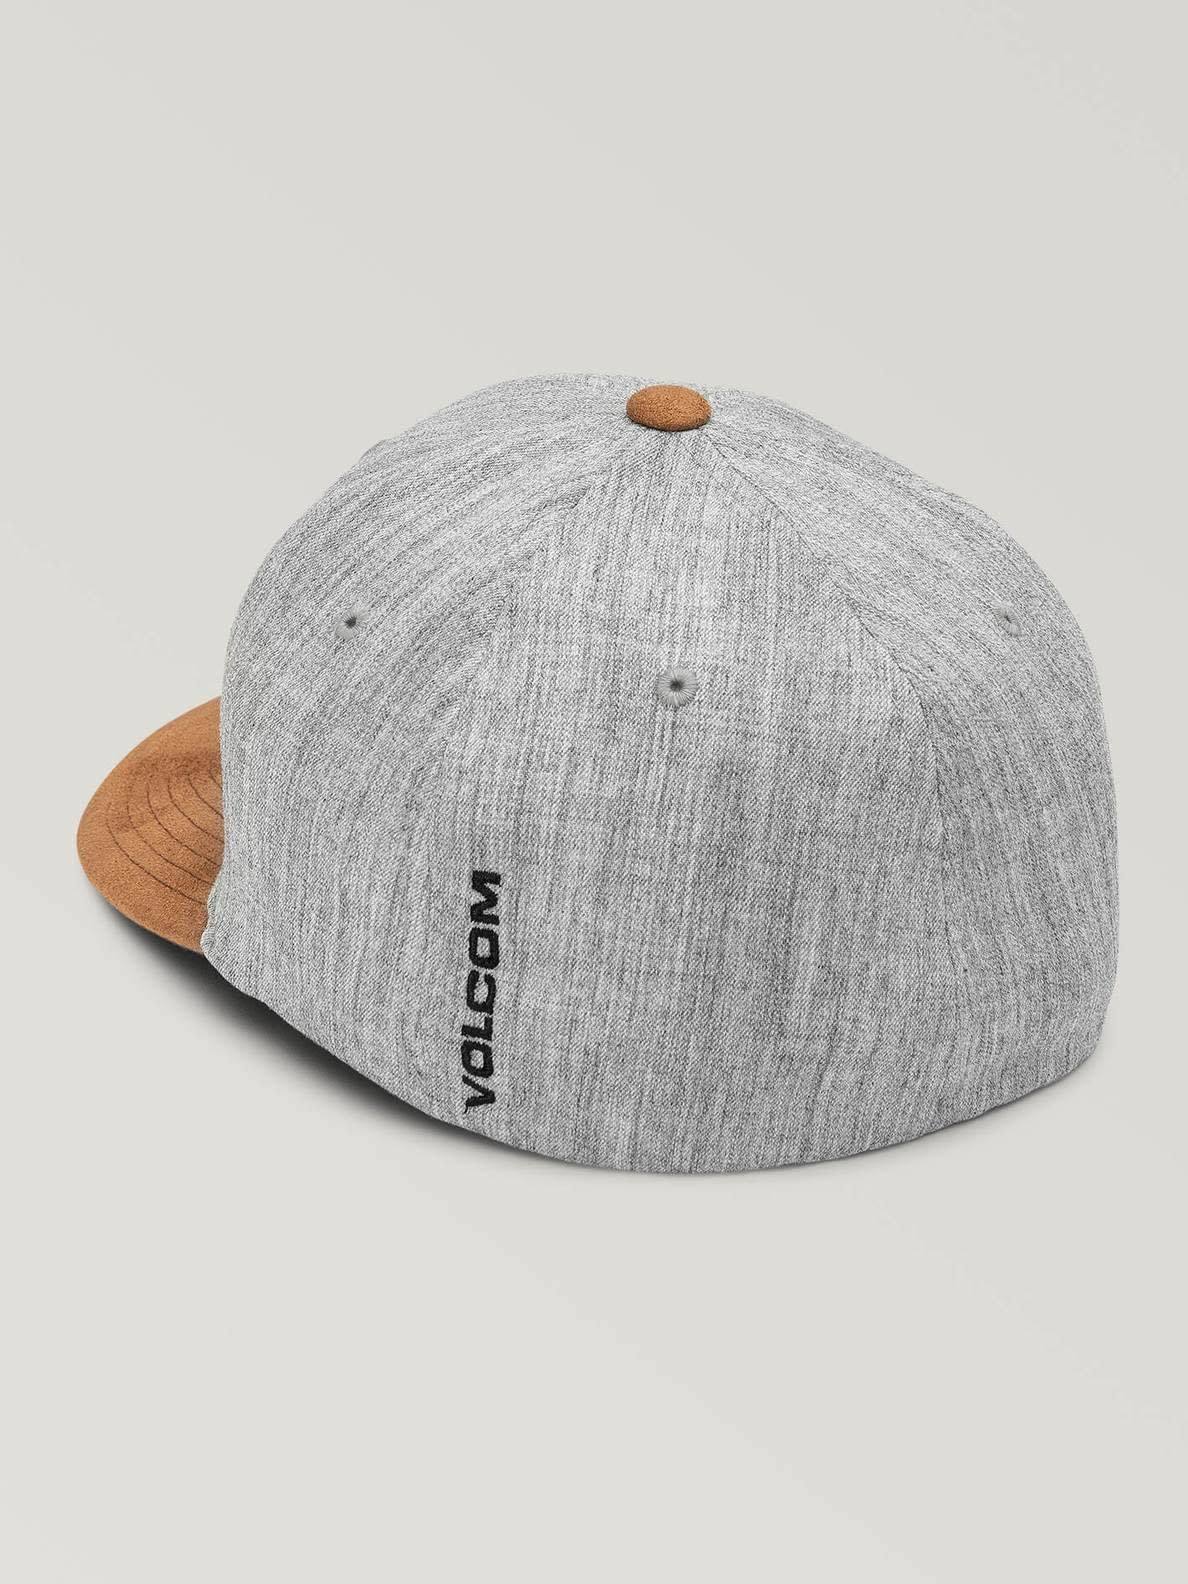 FULL STONE HEATHER XFIT HAT -  RUSTIC BROWN